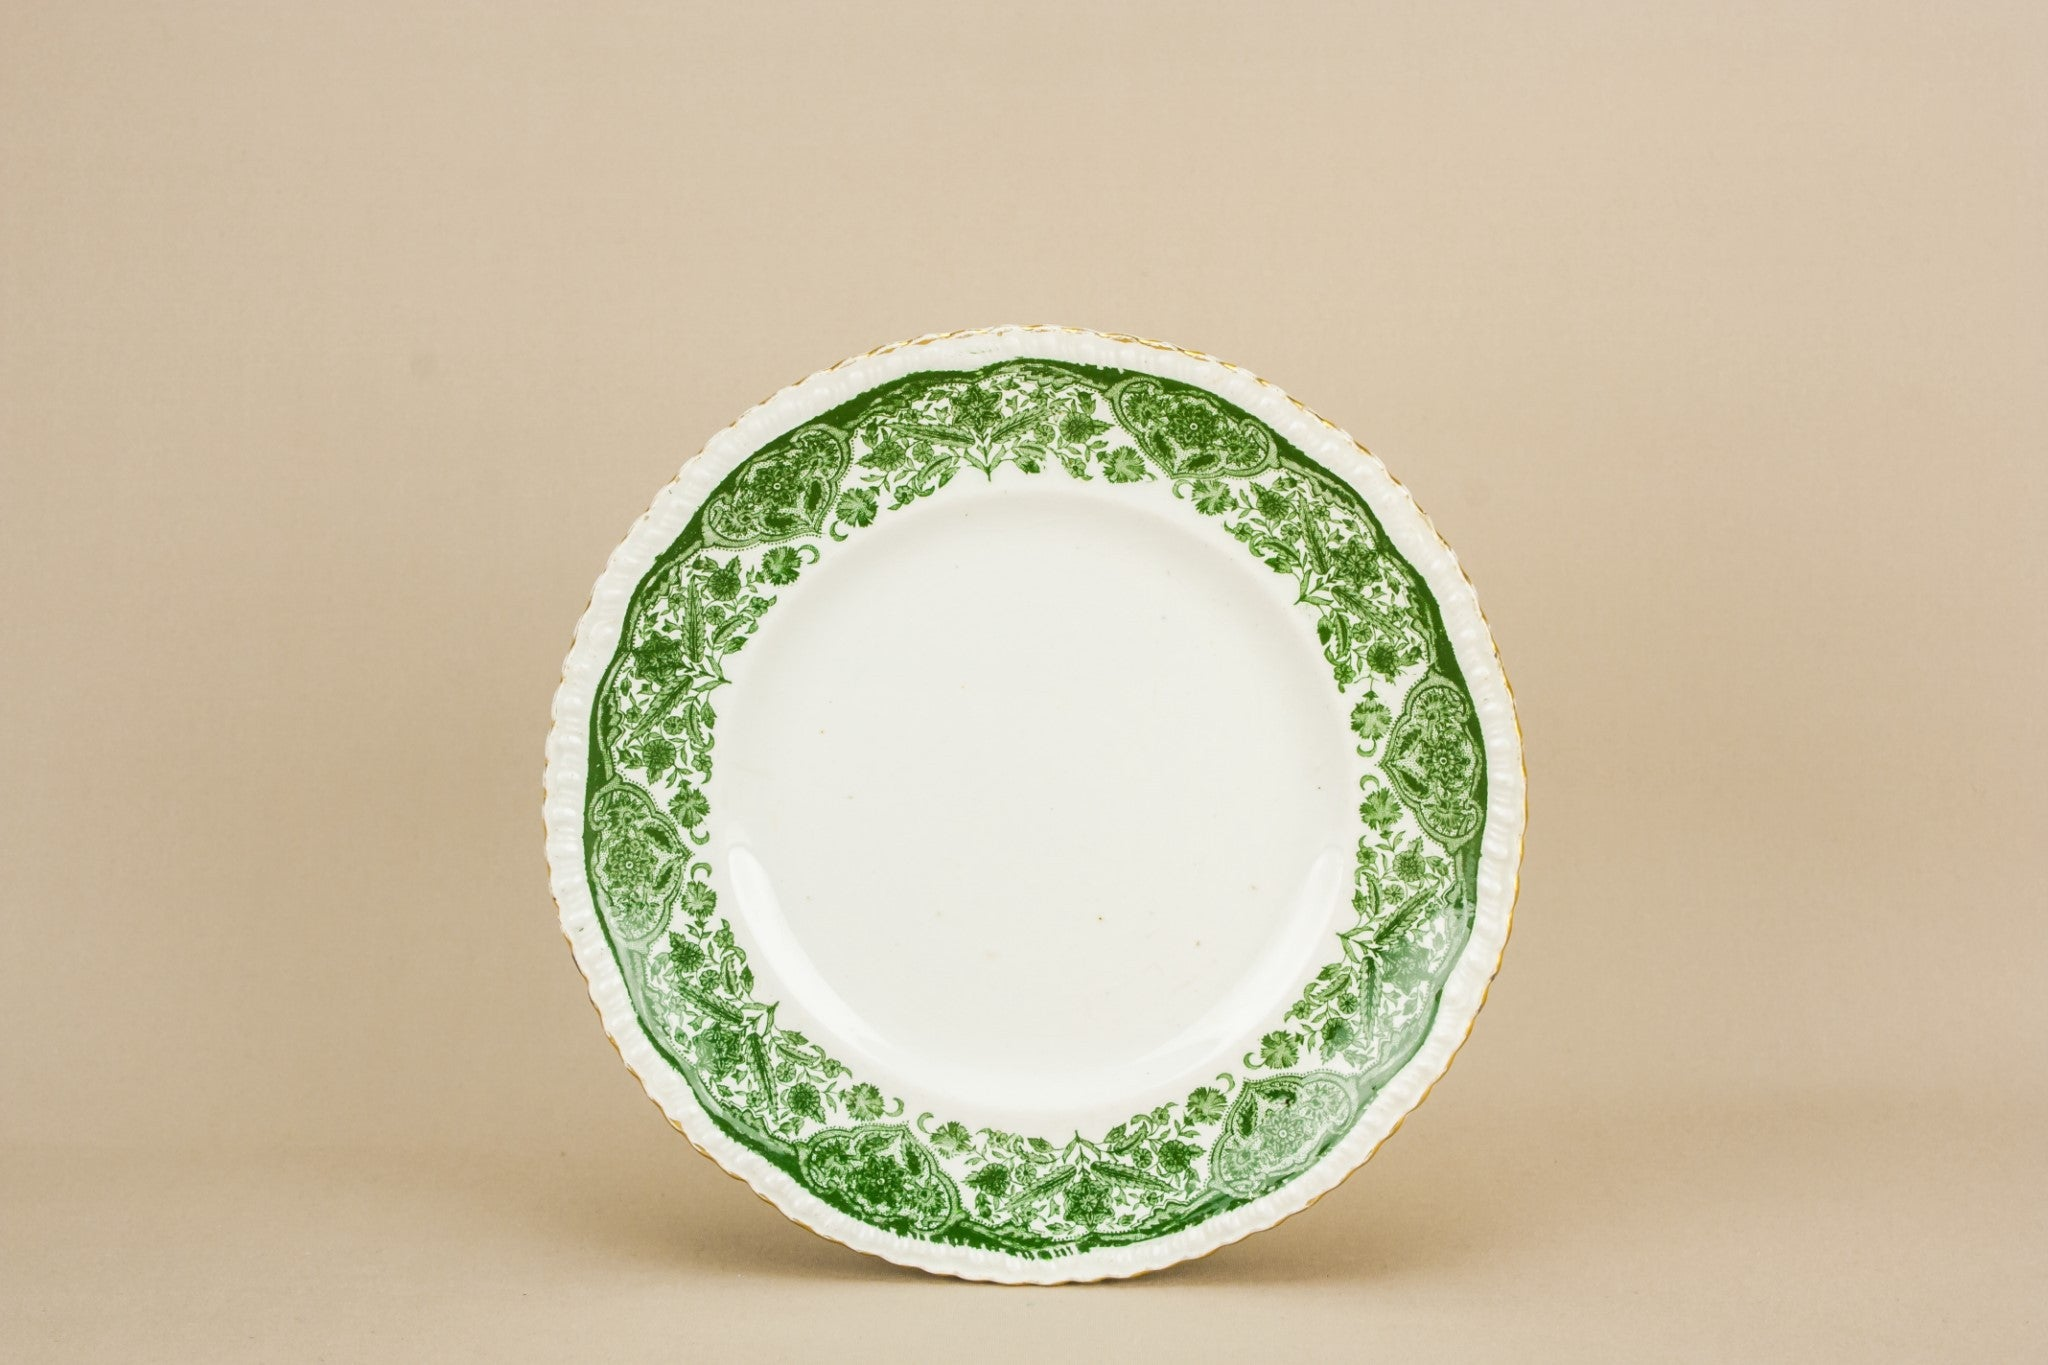 4 small green plates